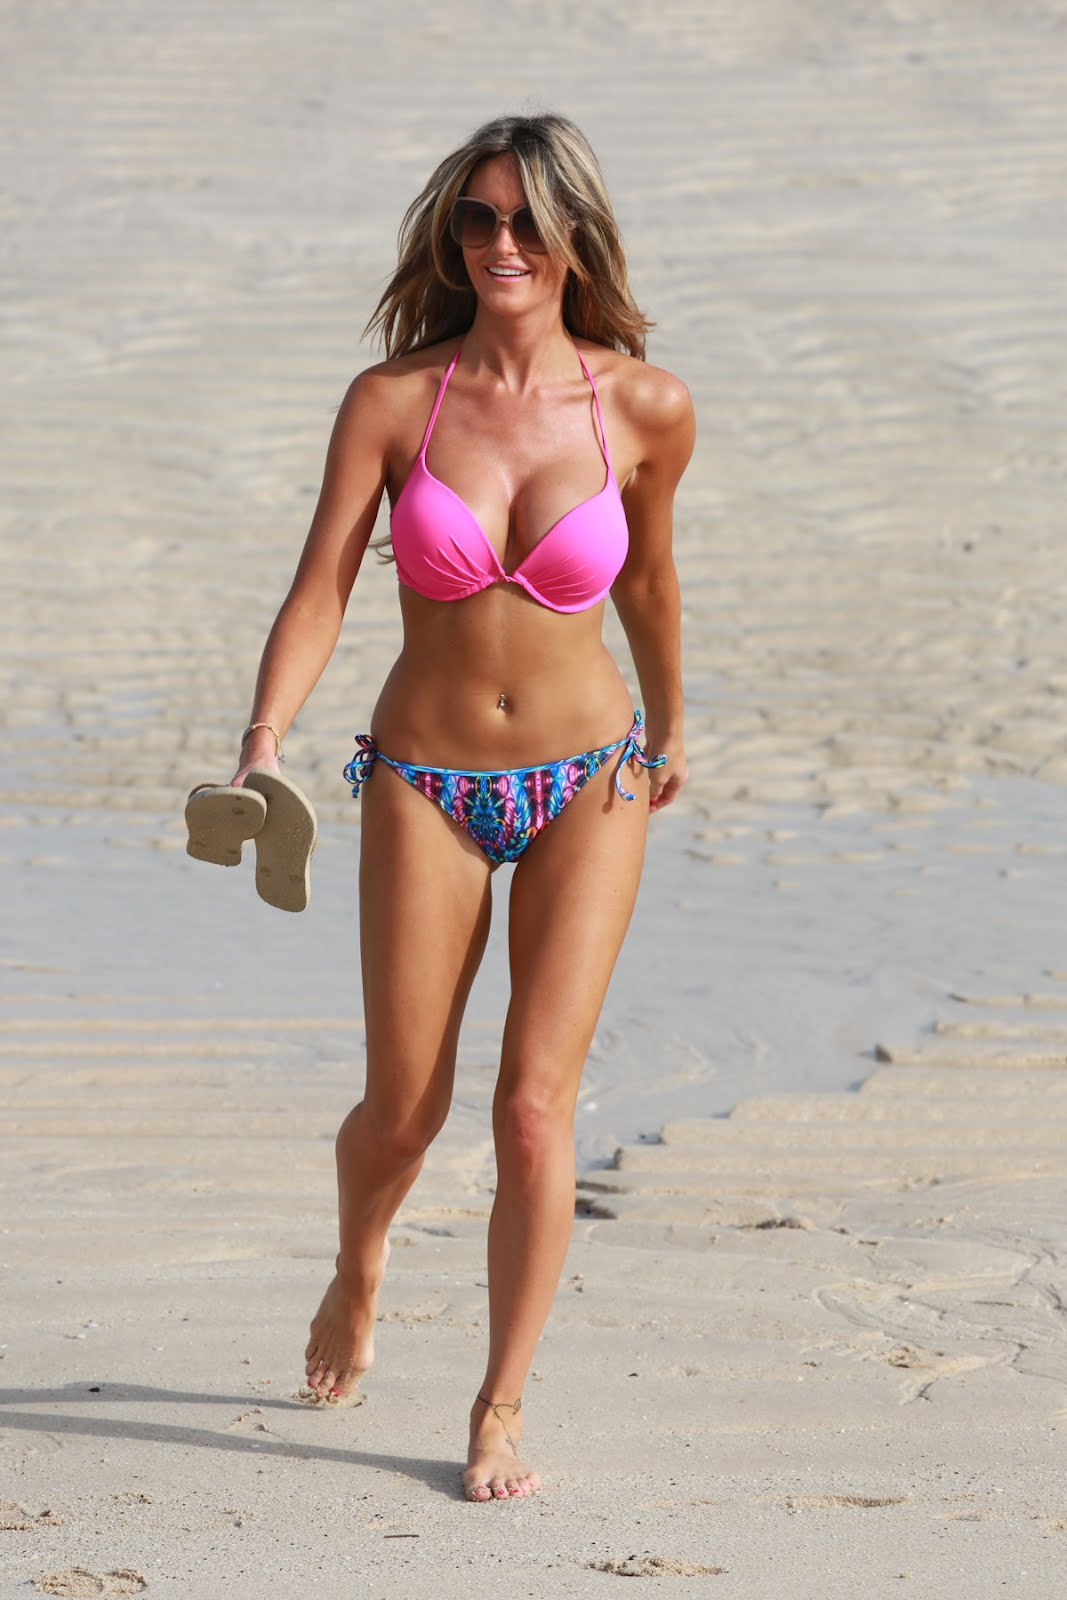 http://3.bp.blogspot.com/-XVjKorGsPgU/T_HyrRqax9I/AAAAAAAAHuU/X8t9h673dEQ/s1600/GEORGINA-DORSETT-in-Bikini-on-the-Beach-in-Dubai-3.jpg